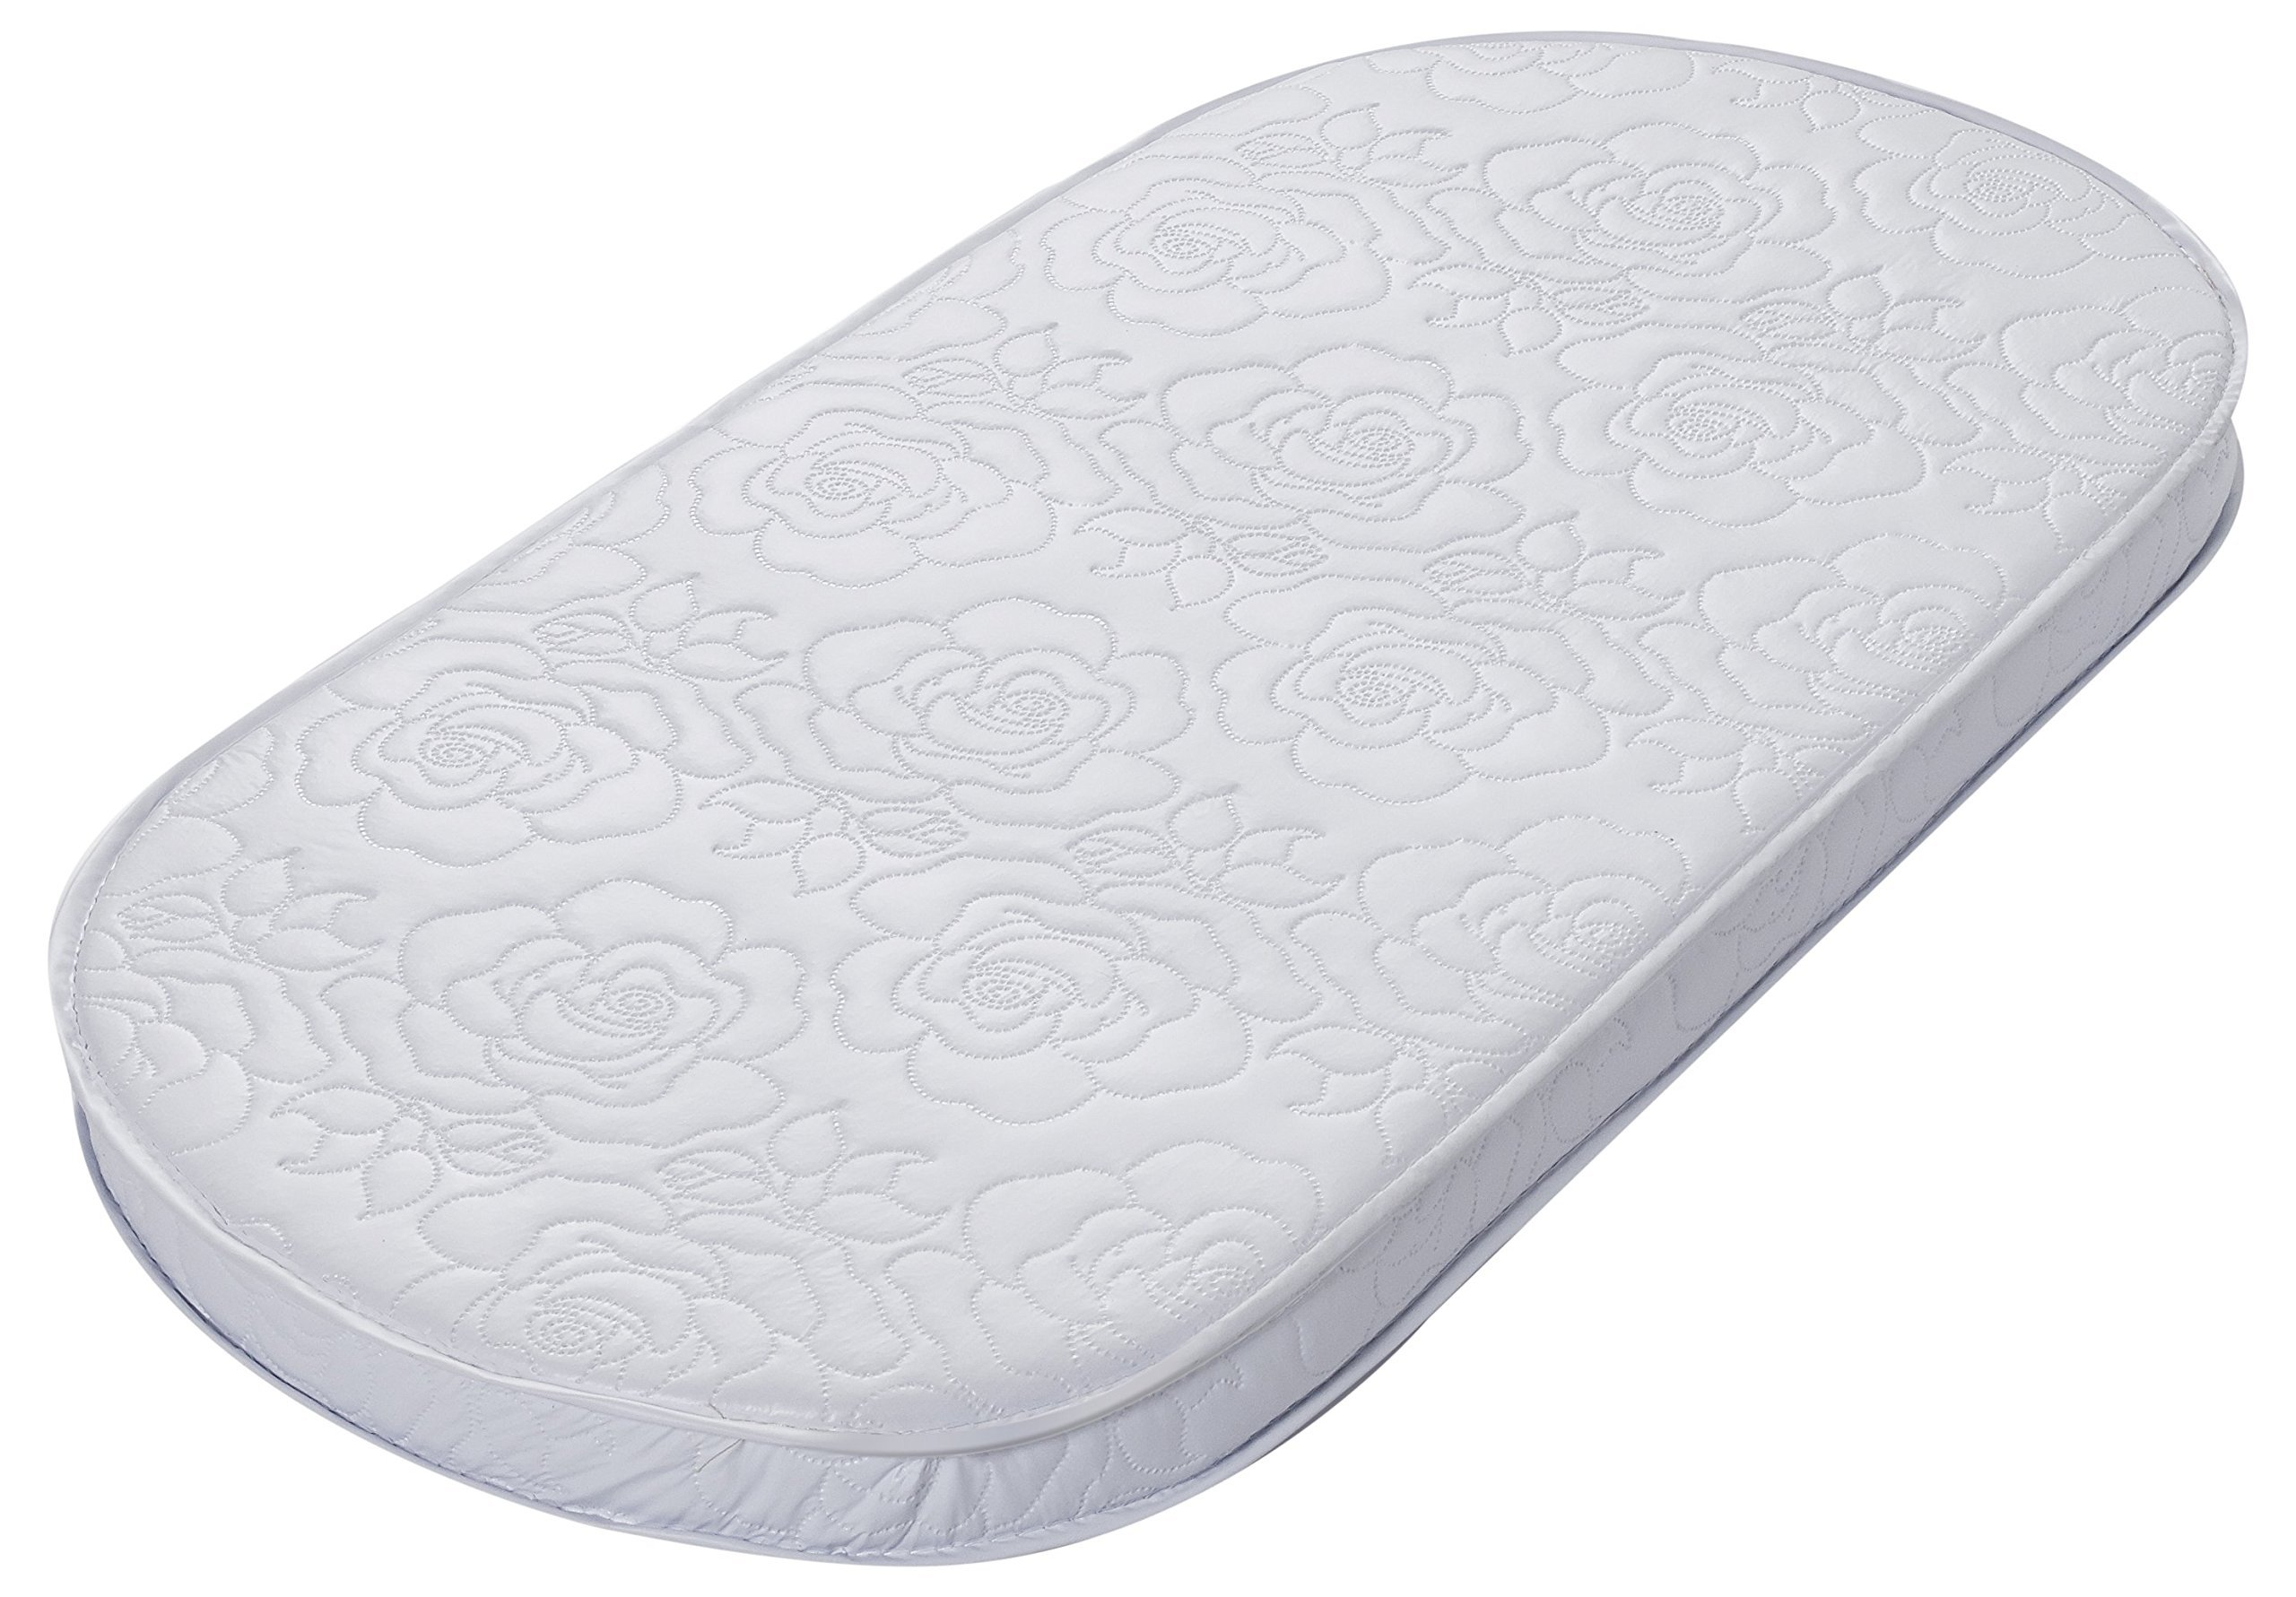 Big Oshi Waterproof Oval Baby Bassinet Mattress - Waterproof Exterior - Thick, Soft, Breathable Foam Interior - Comfy, Padded Design, Also Fits Portable Bassinets, 16''x32''